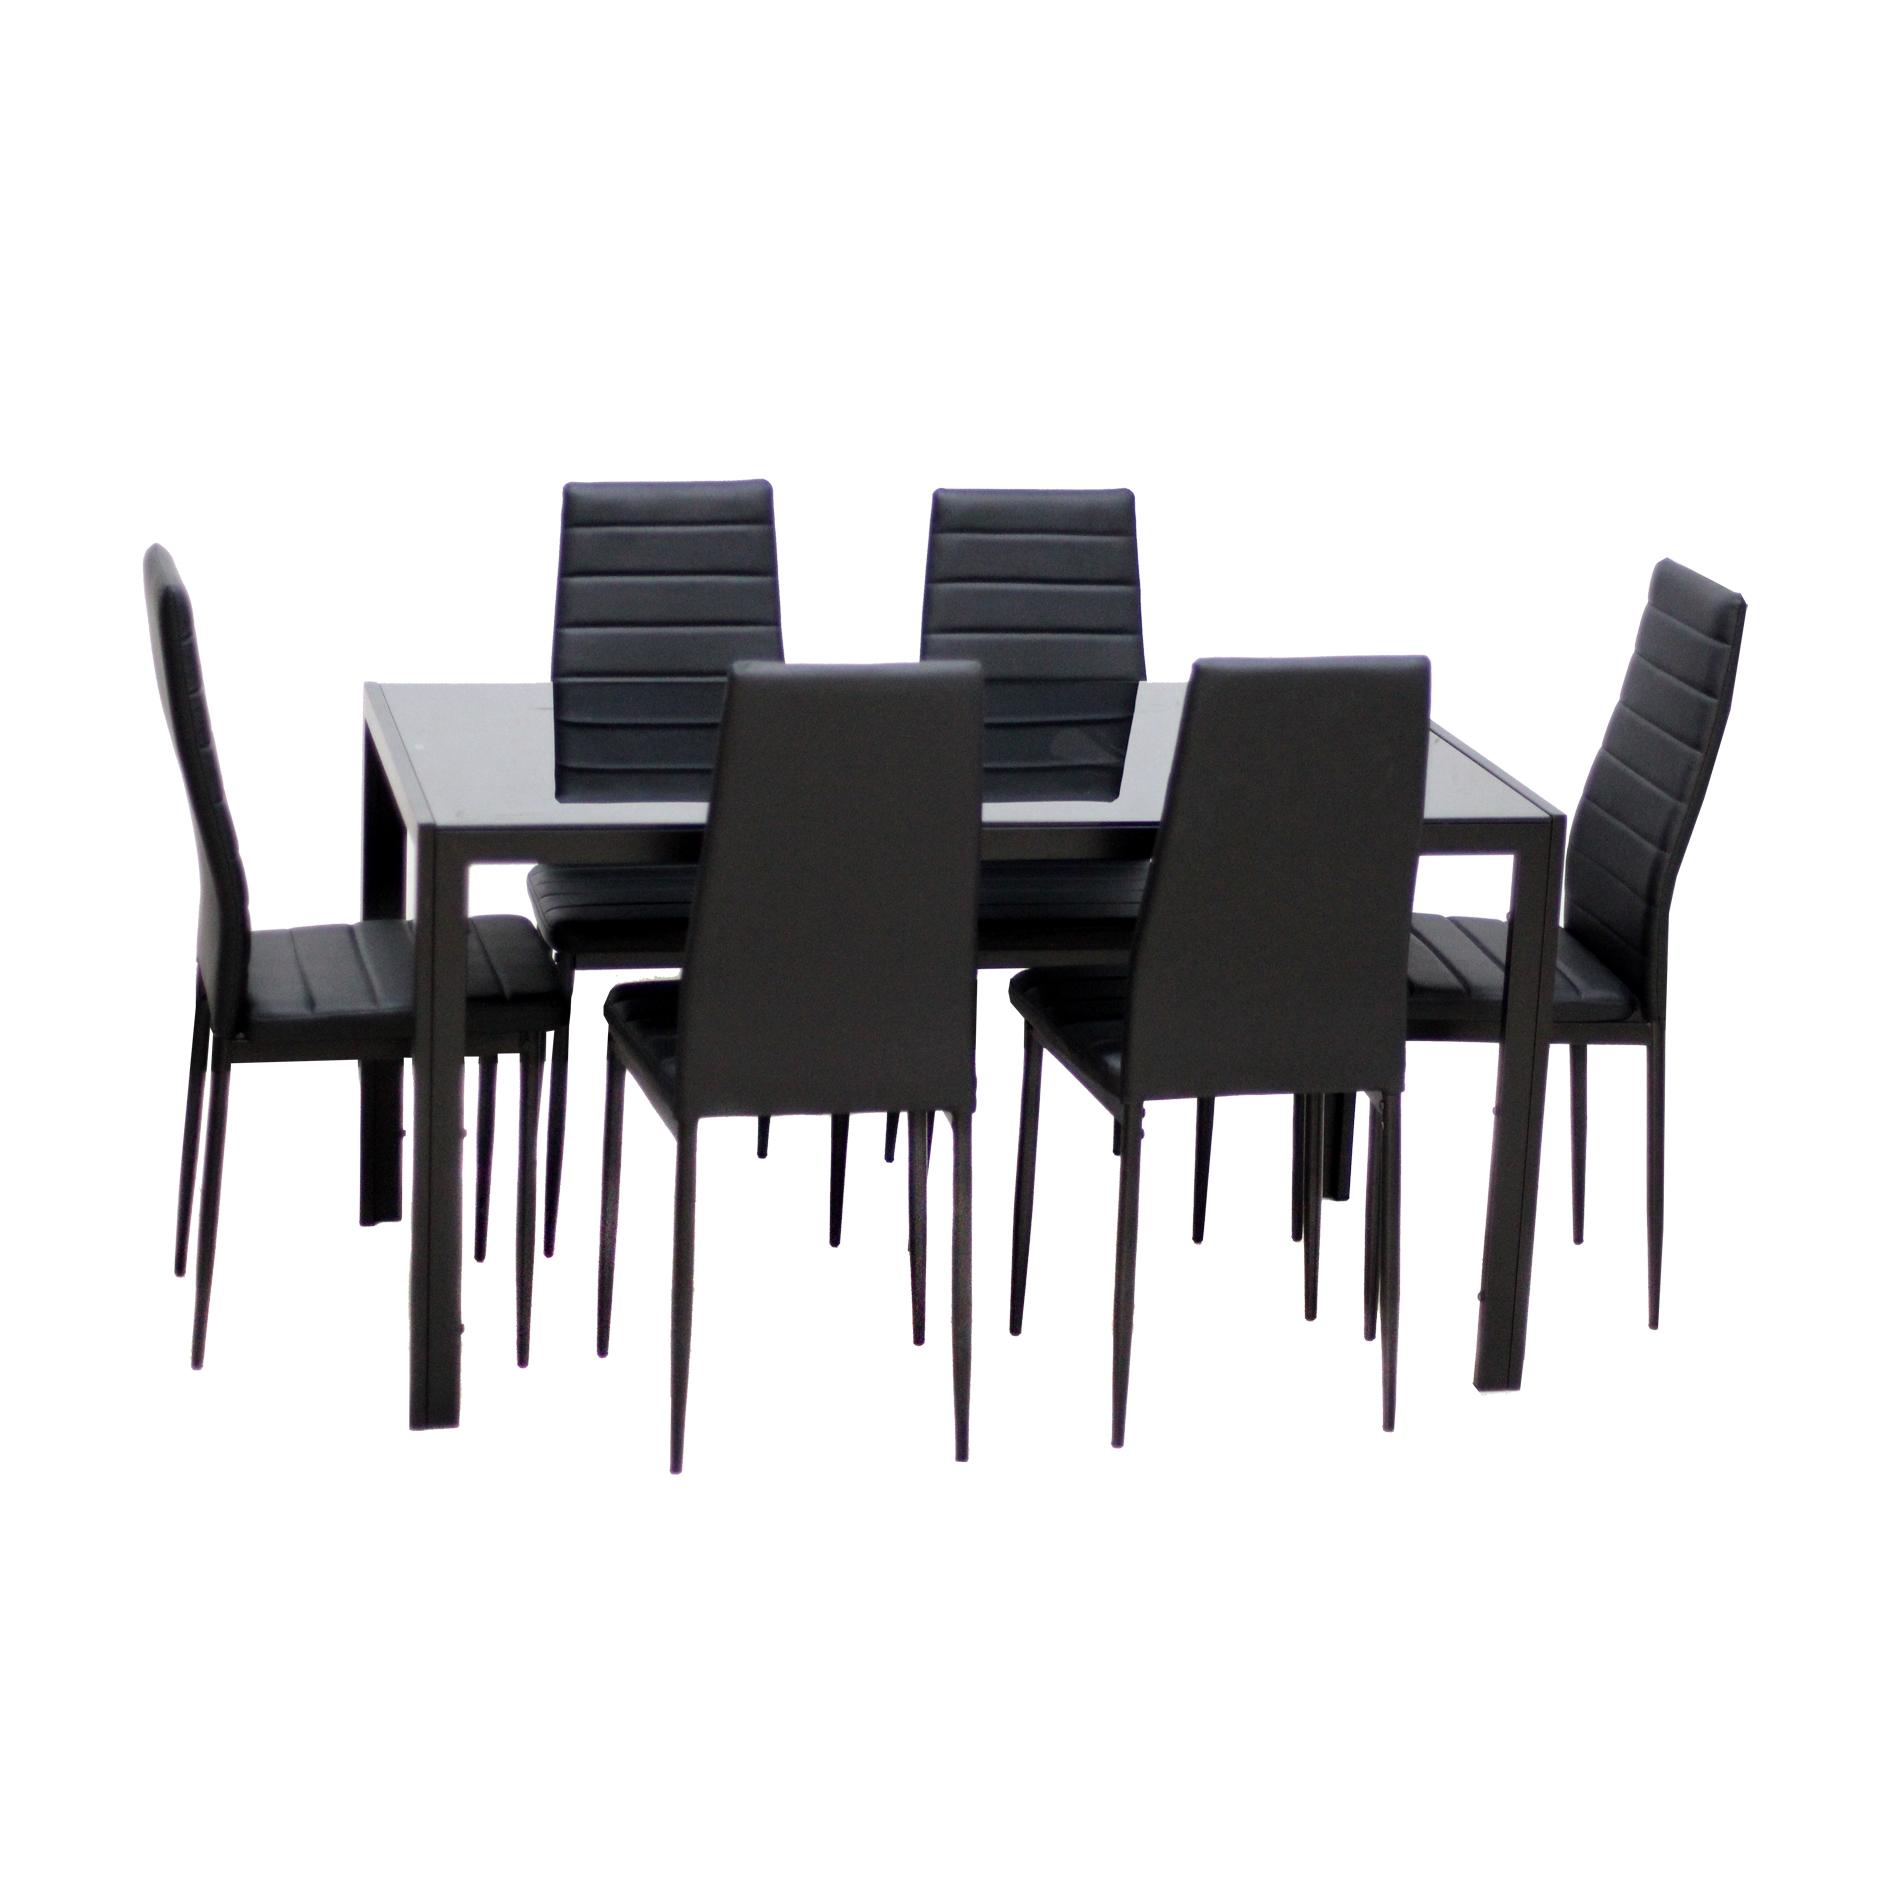 IDS HOME 7 Piece Breakfast Furniture Glass Dining Table Set with 6 Seat Chairs